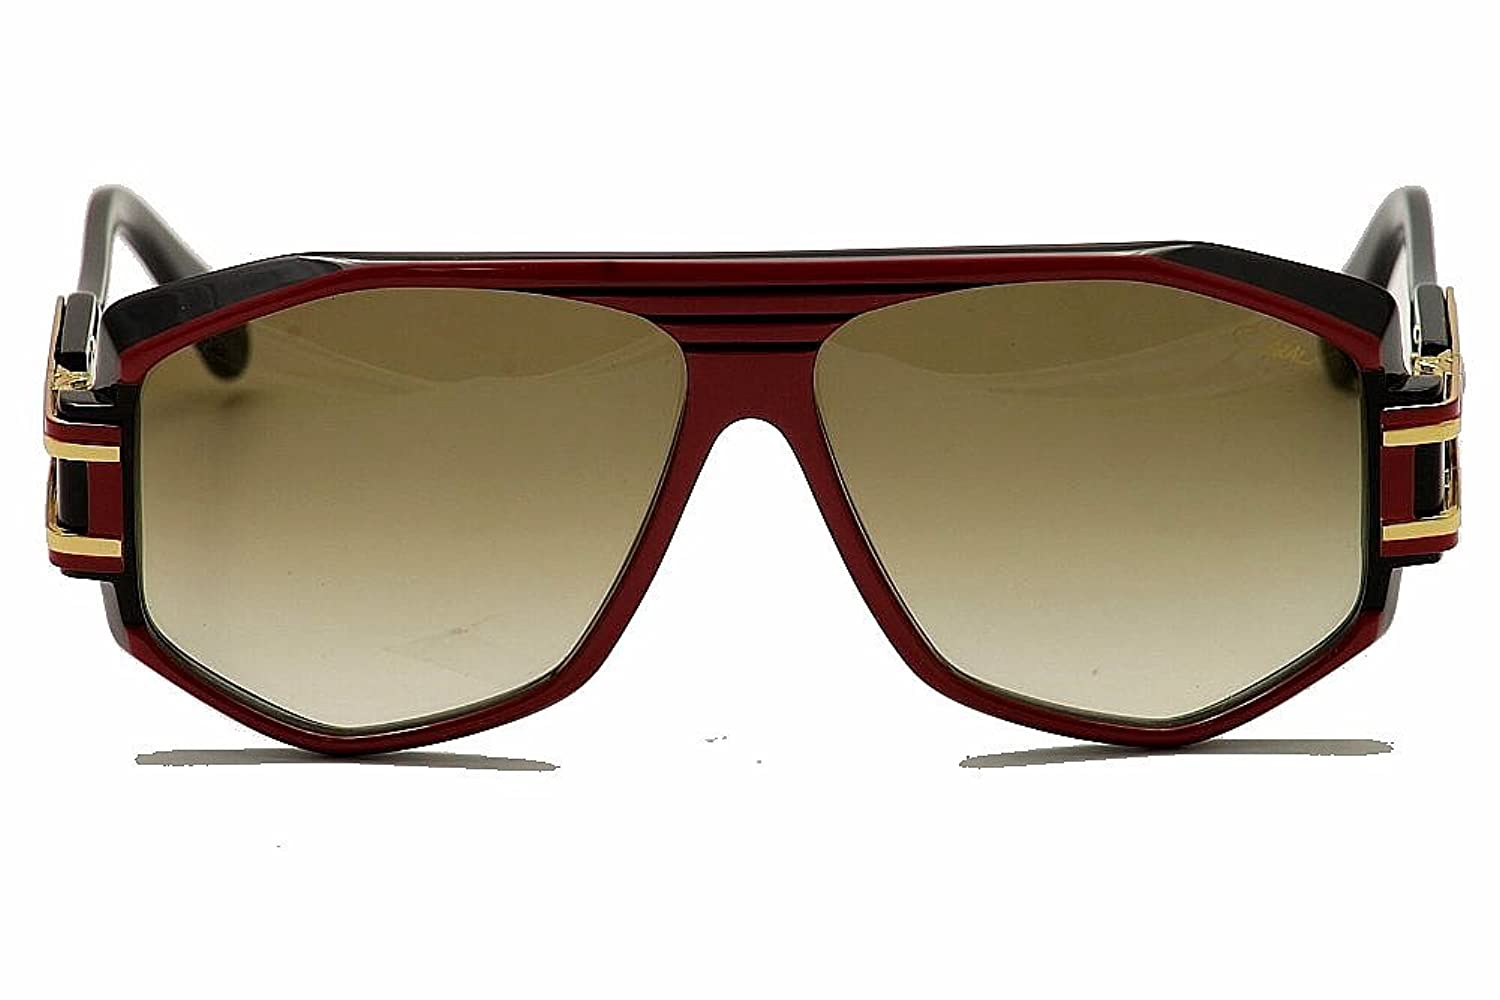 Sonnenbrillen Sunglasses Cazal Vintage 163 /3 200 Red Black Gold 100% Authentic made in Germany wh54woh6